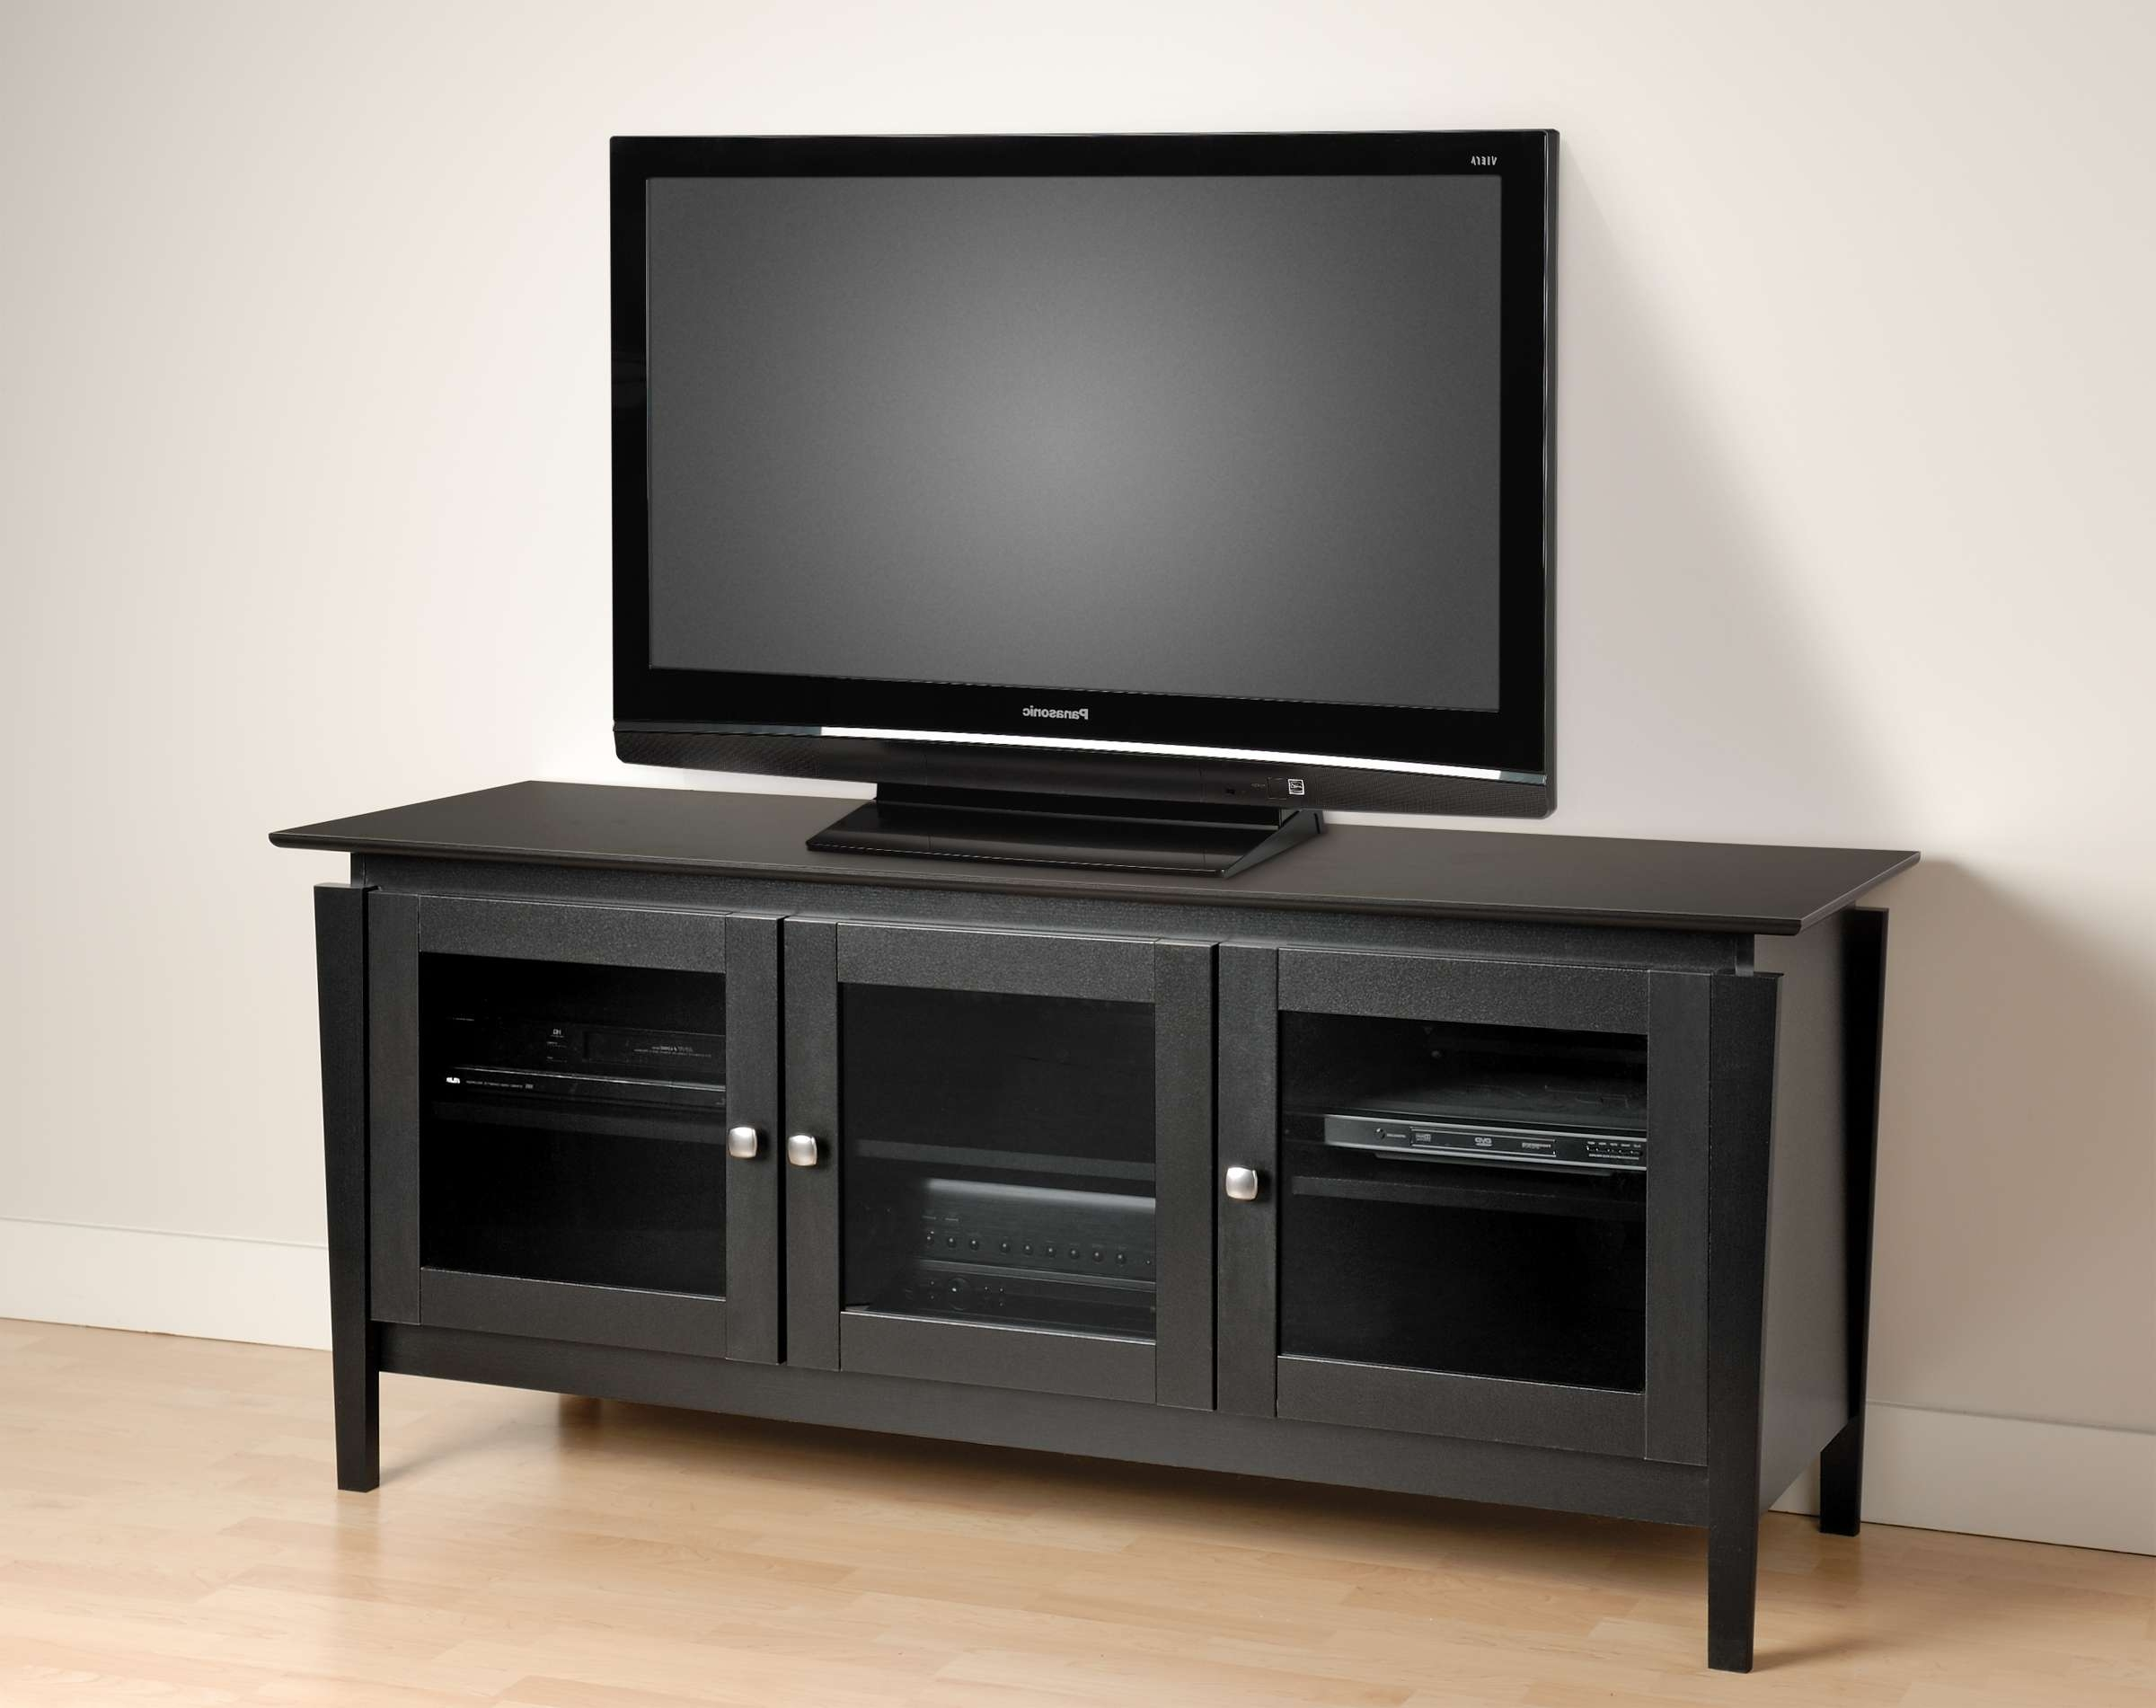 Modern Black Stained Oak Wood Media Cabinet With Glass Doors Of Intended For Tv Cabinets With Glass Doors (View 14 of 20)